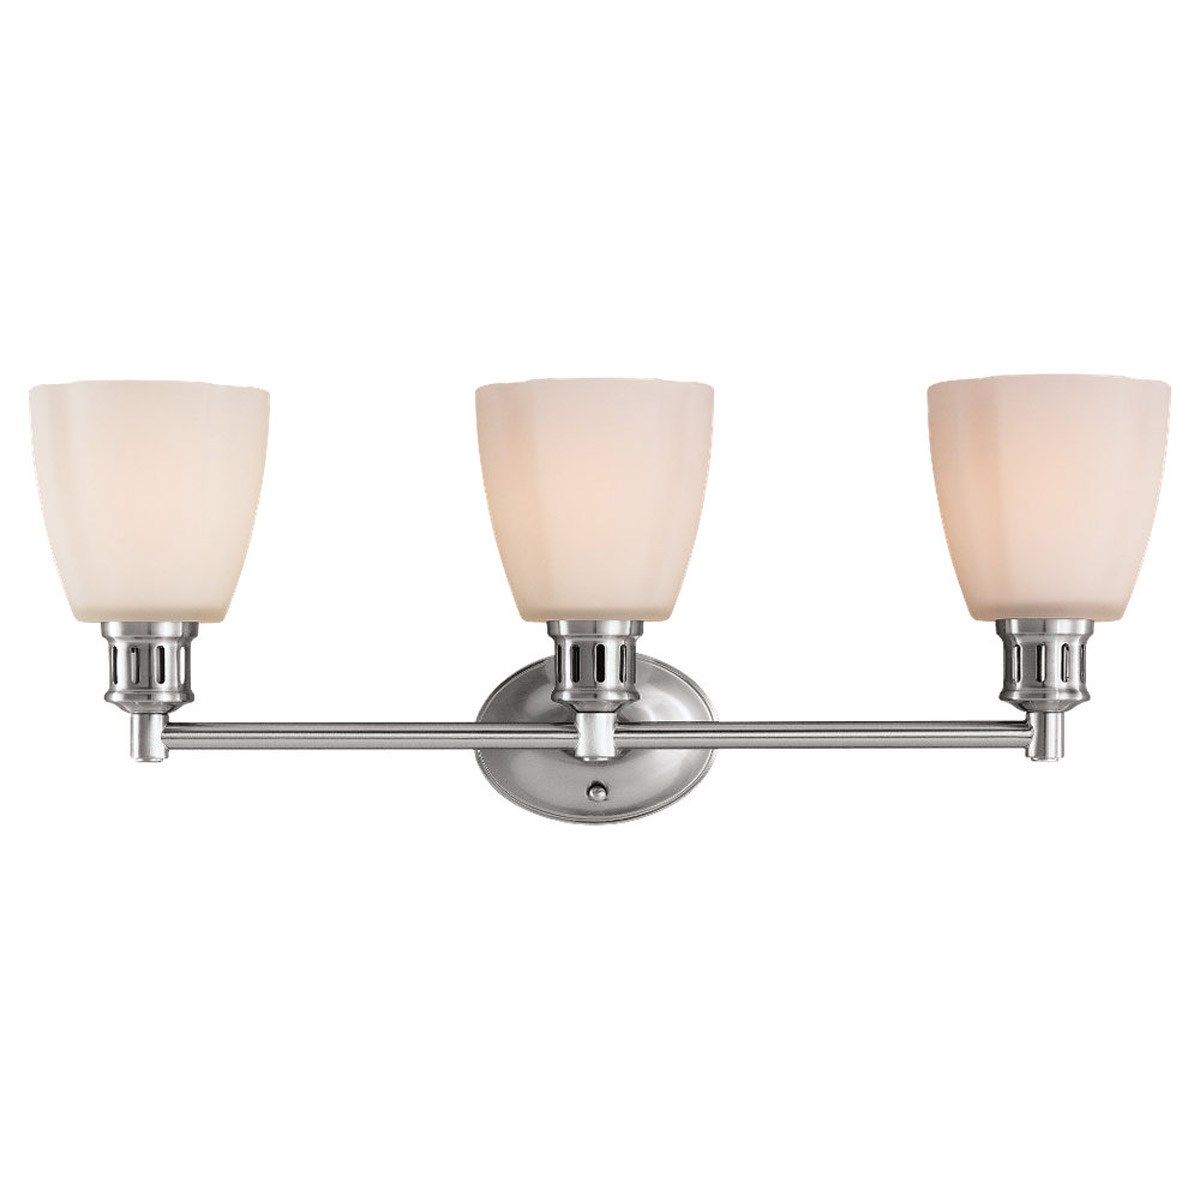 Sea Gull Lighting Century 3 Light Bath Vanity in Brushed Nickel 44475-962